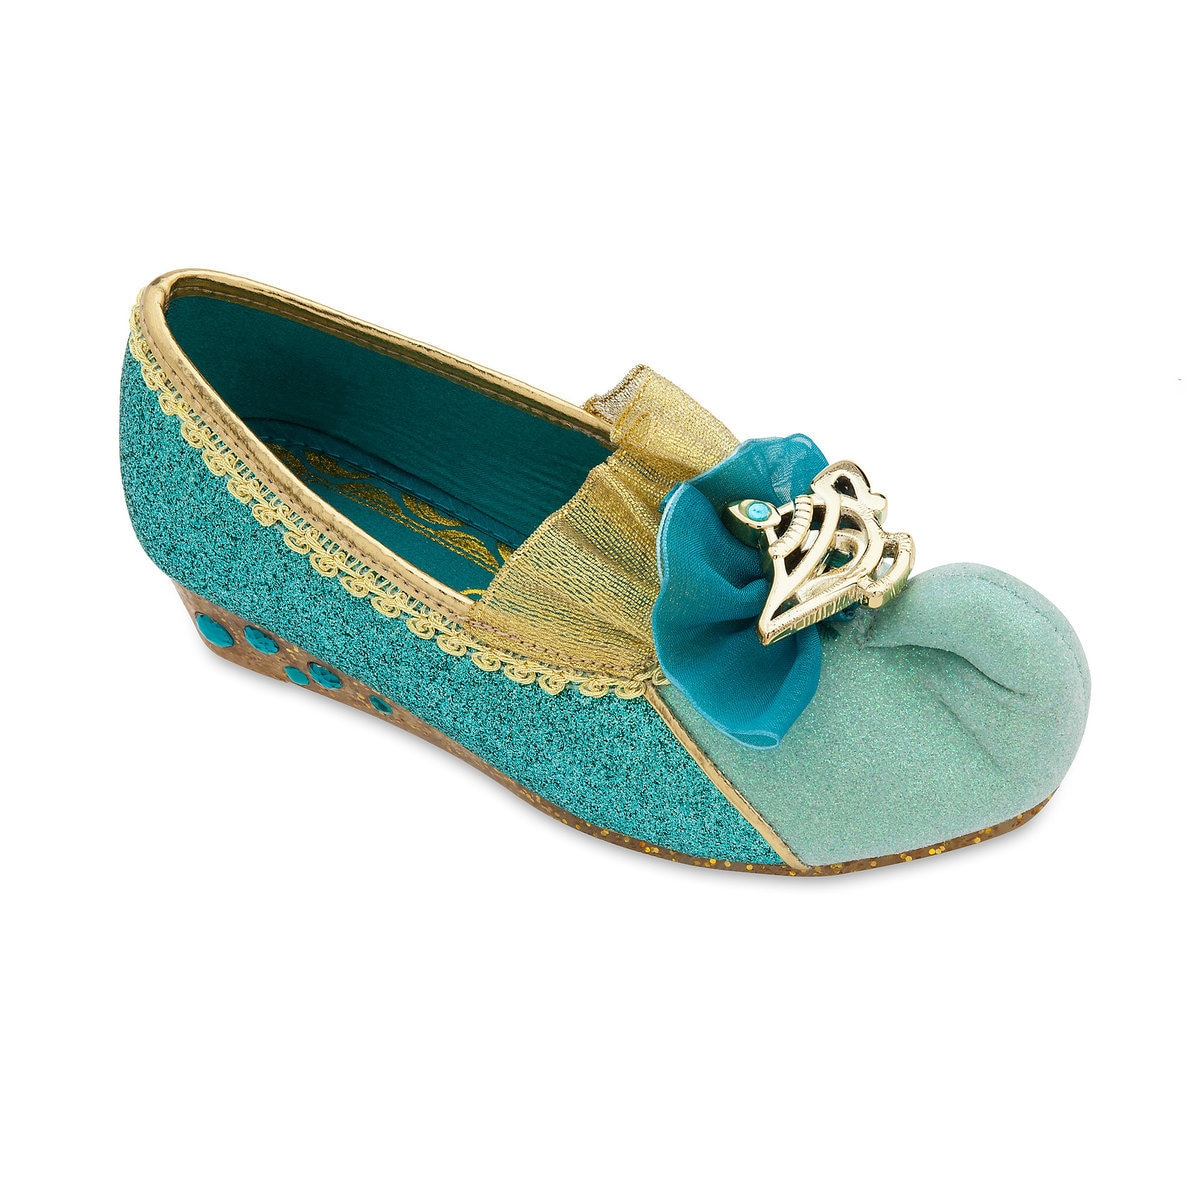 ad572e962a70 Product Image of Jasmine Costume Shoes for Kids   1